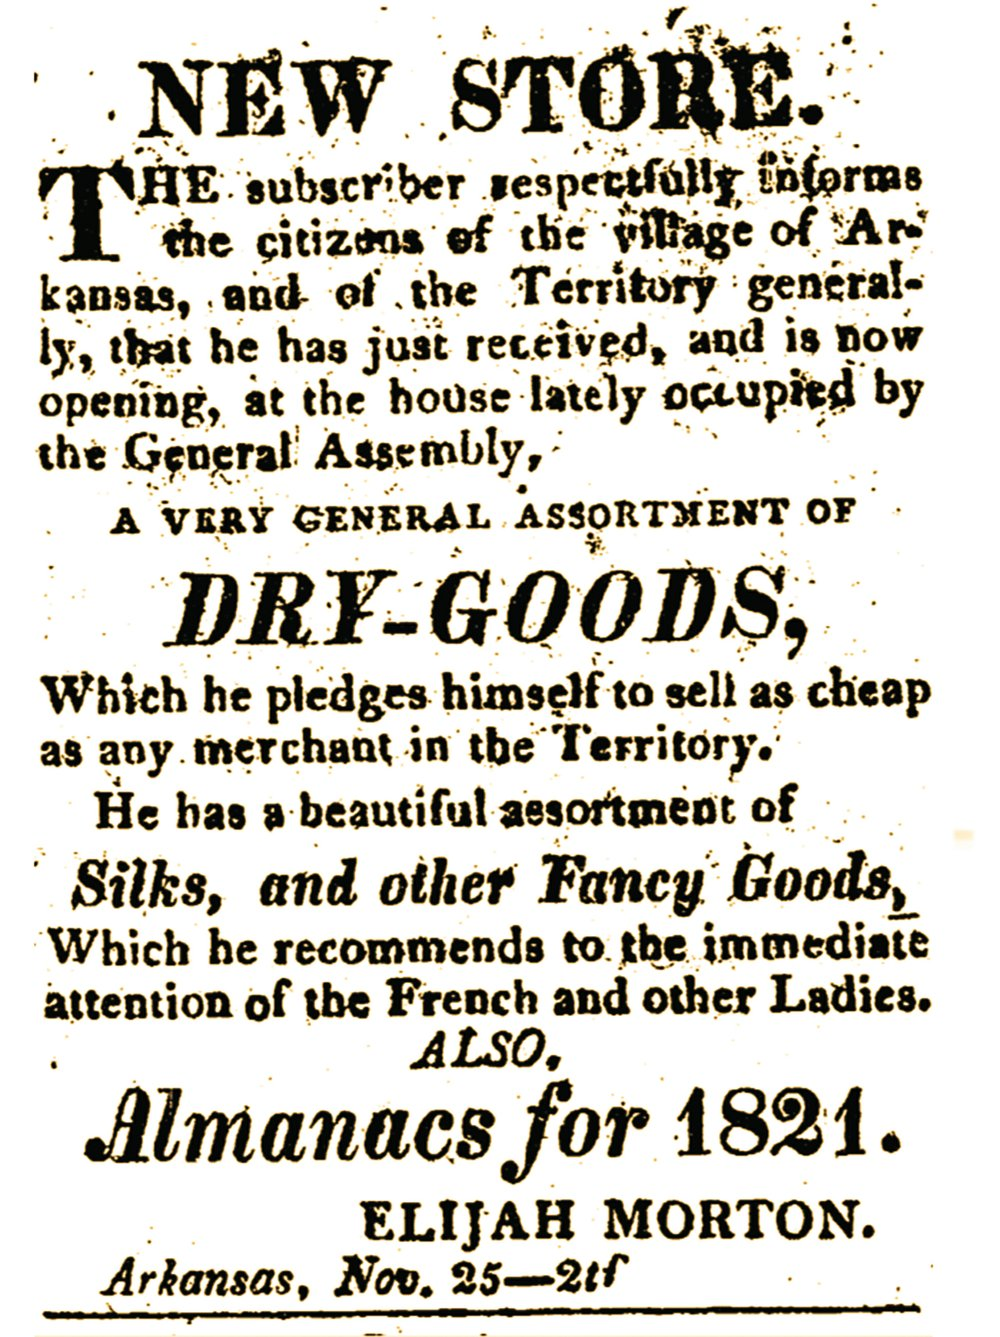 Ad from the Dec. 23, 1820, Arkansas Gazette published by William Woodruff in the Arkansas Territory.